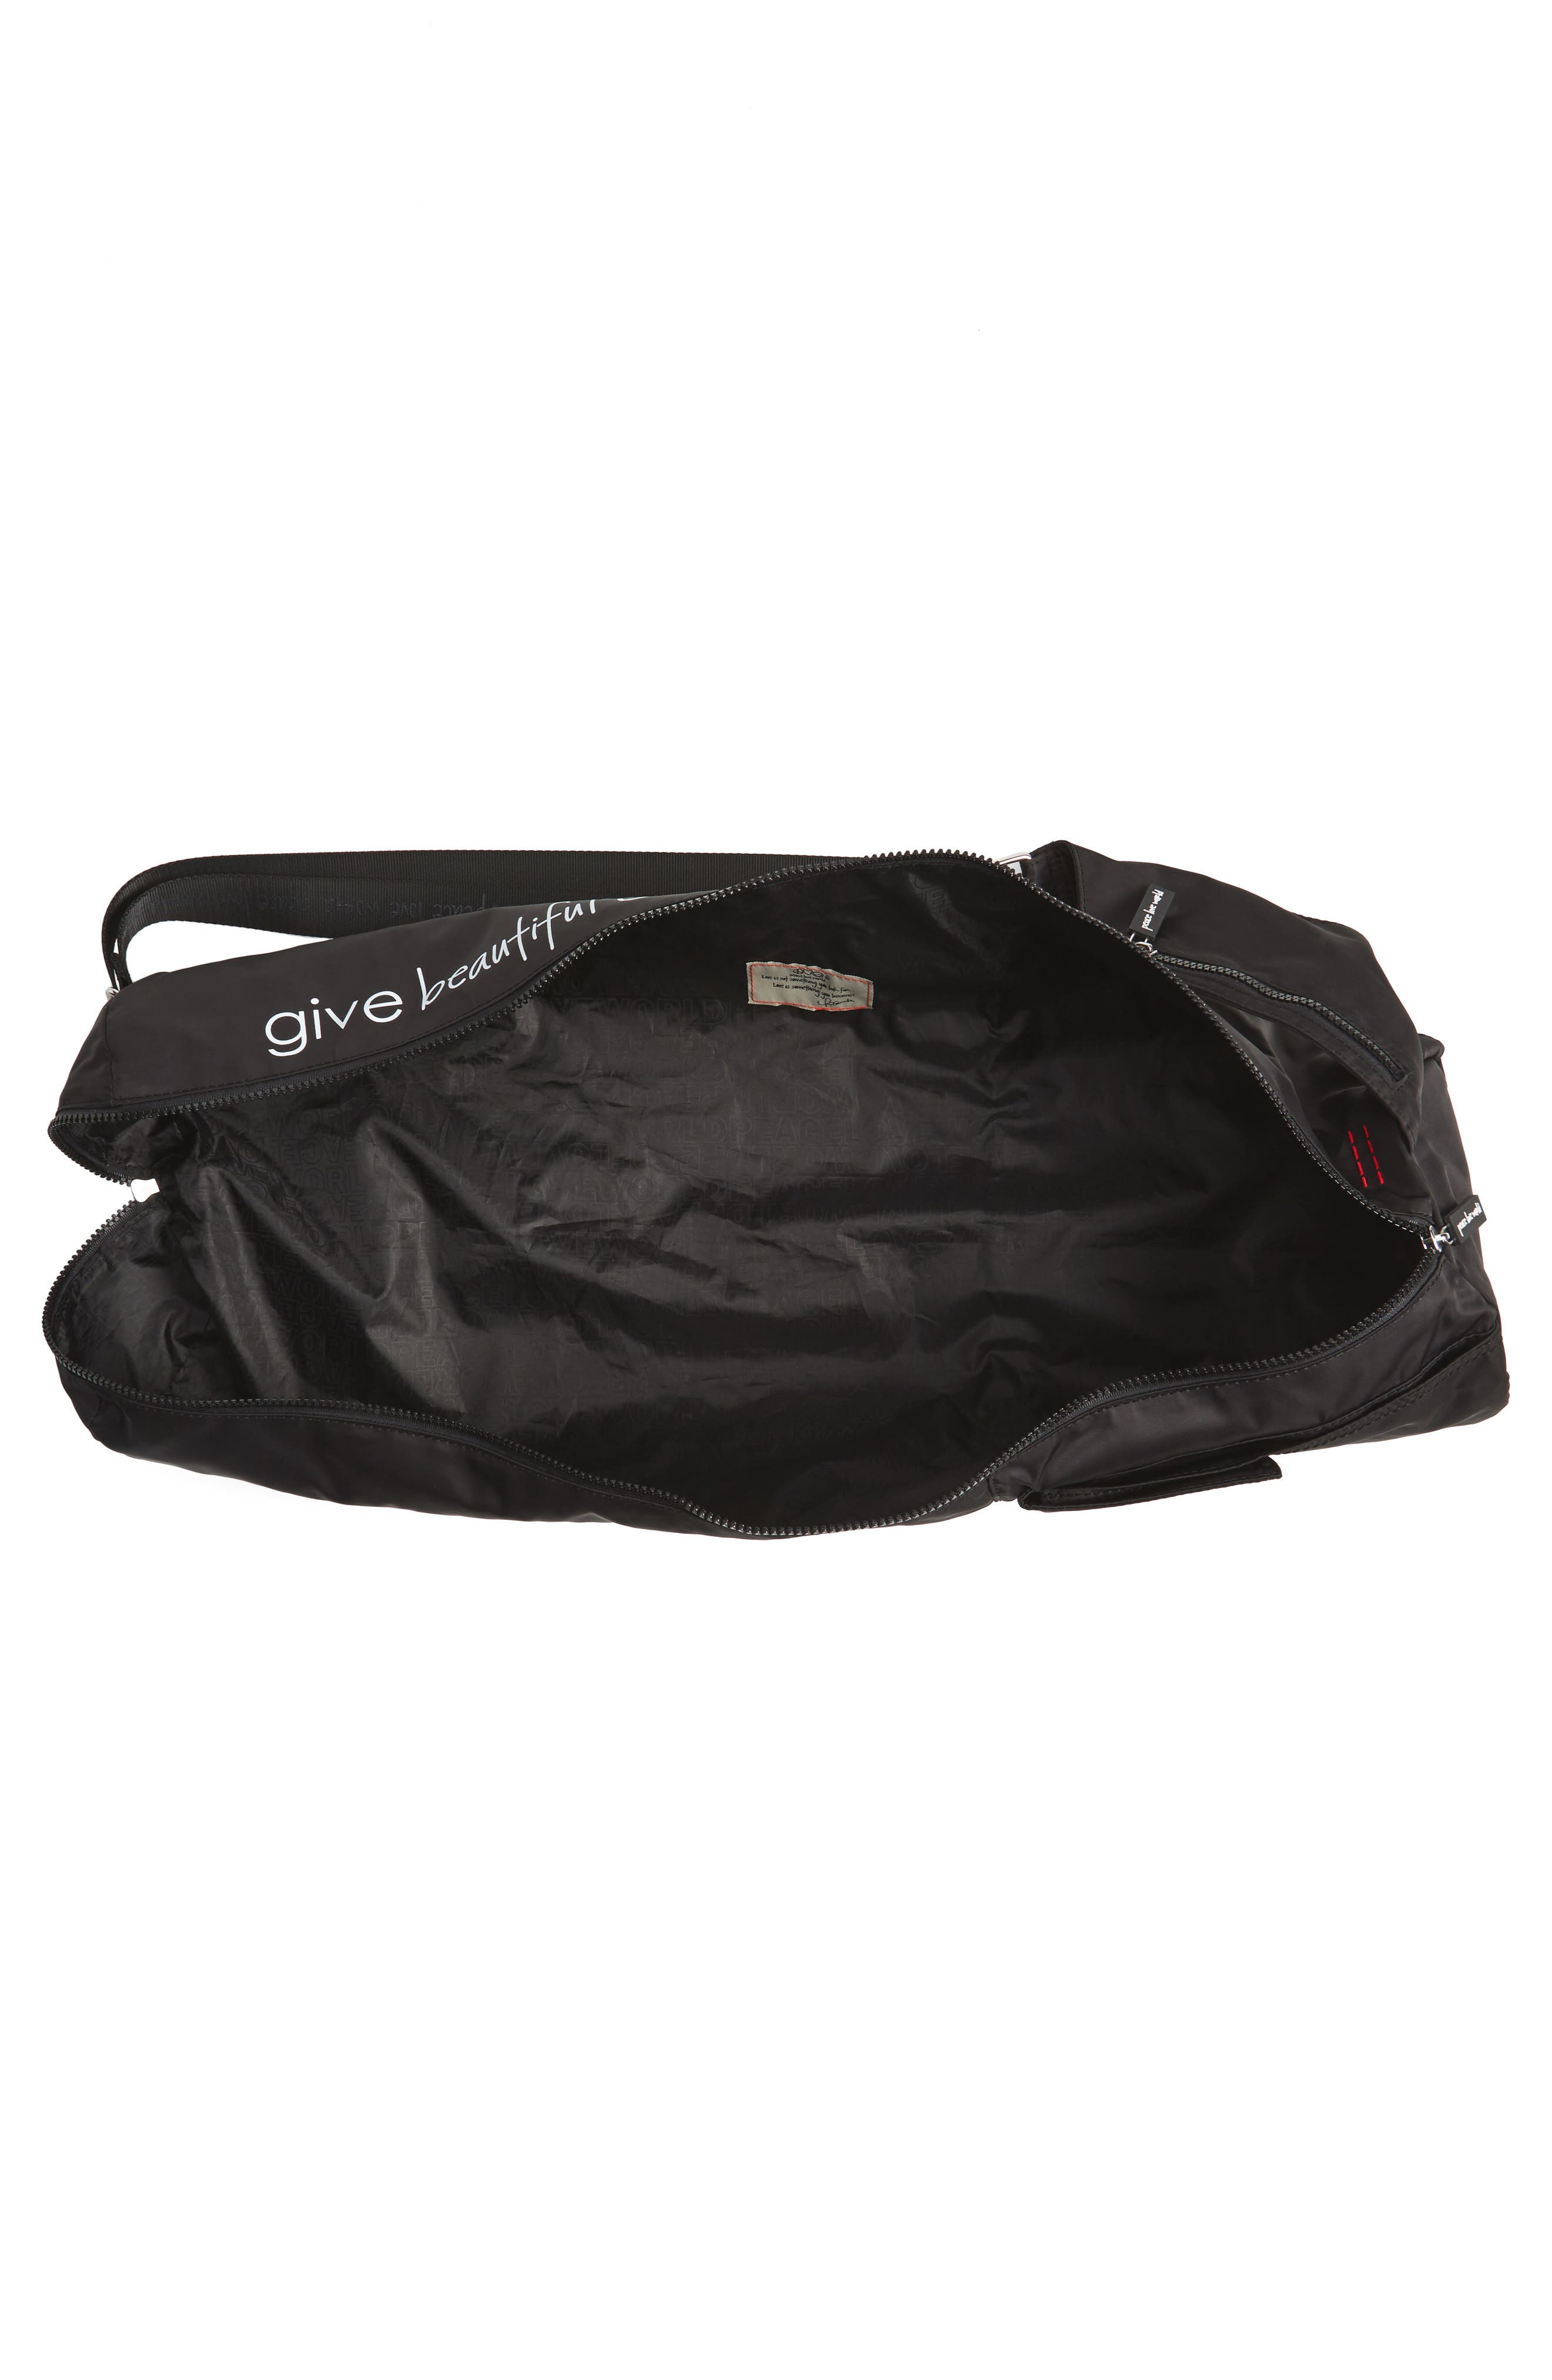 Nylon Yoga Bag,                             Alternate thumbnail 4, color,                             001